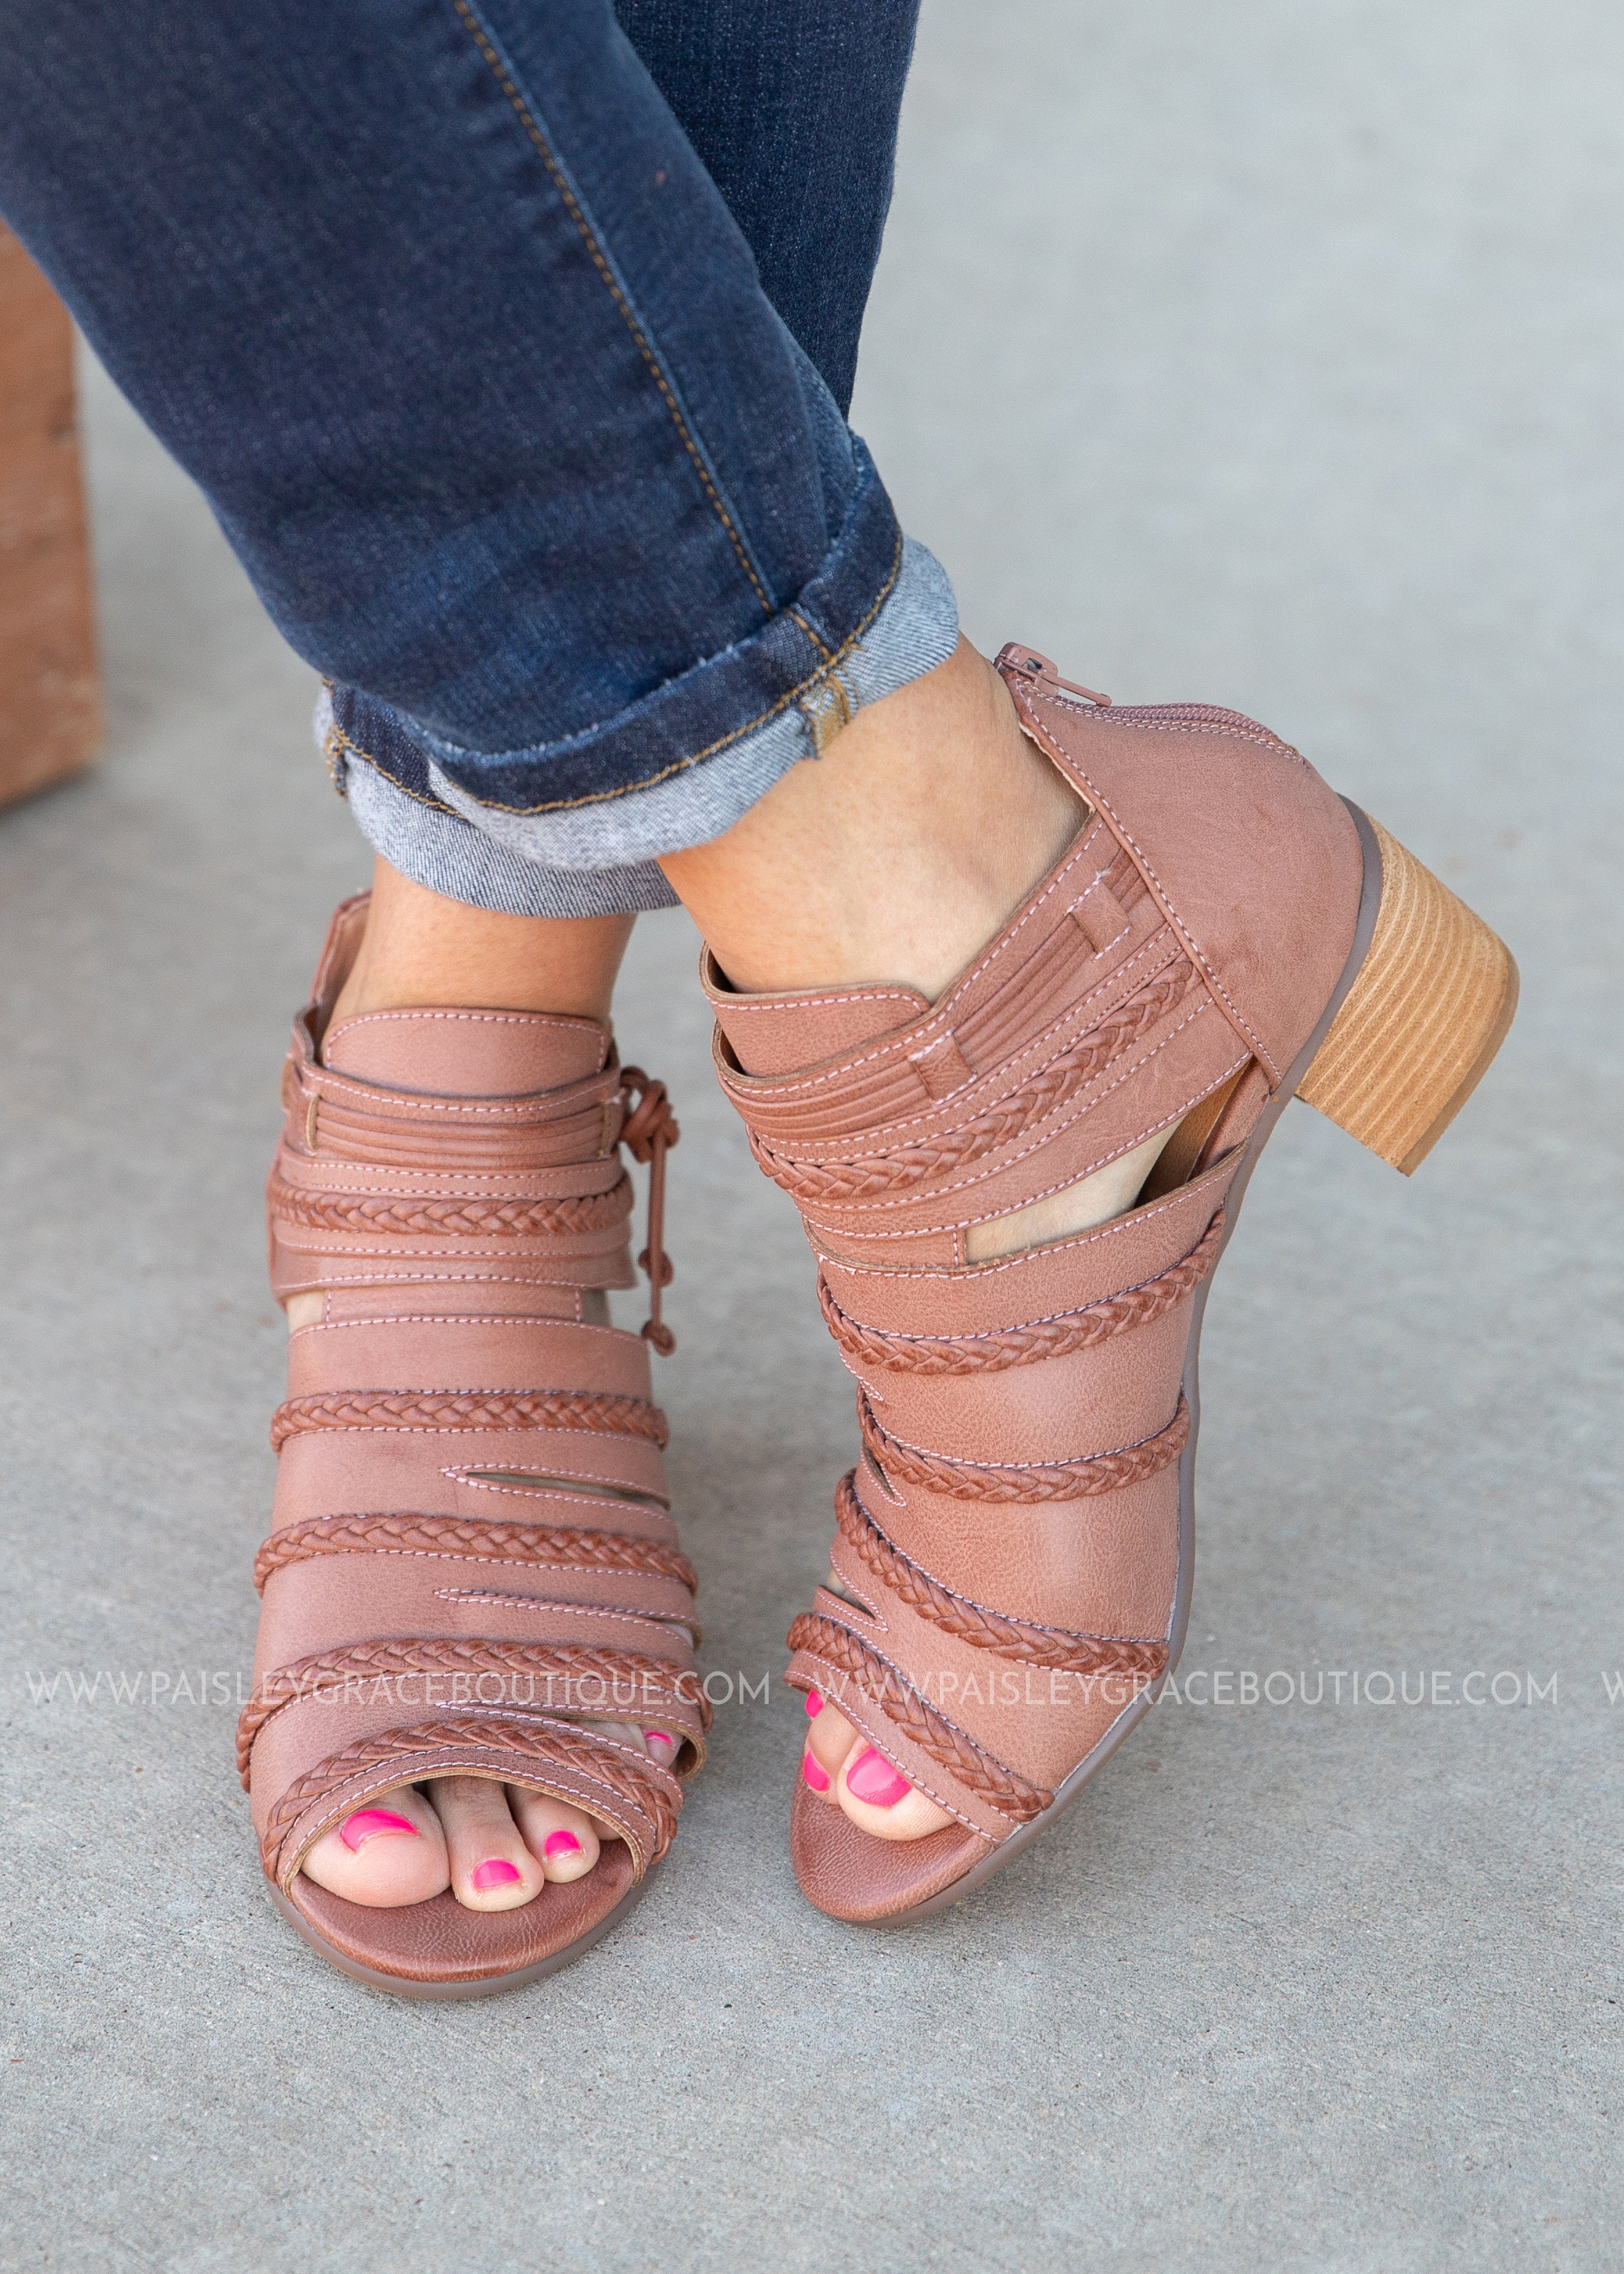 Gianni Peep Toe Booties-DK BLUSH - FINAL SALE